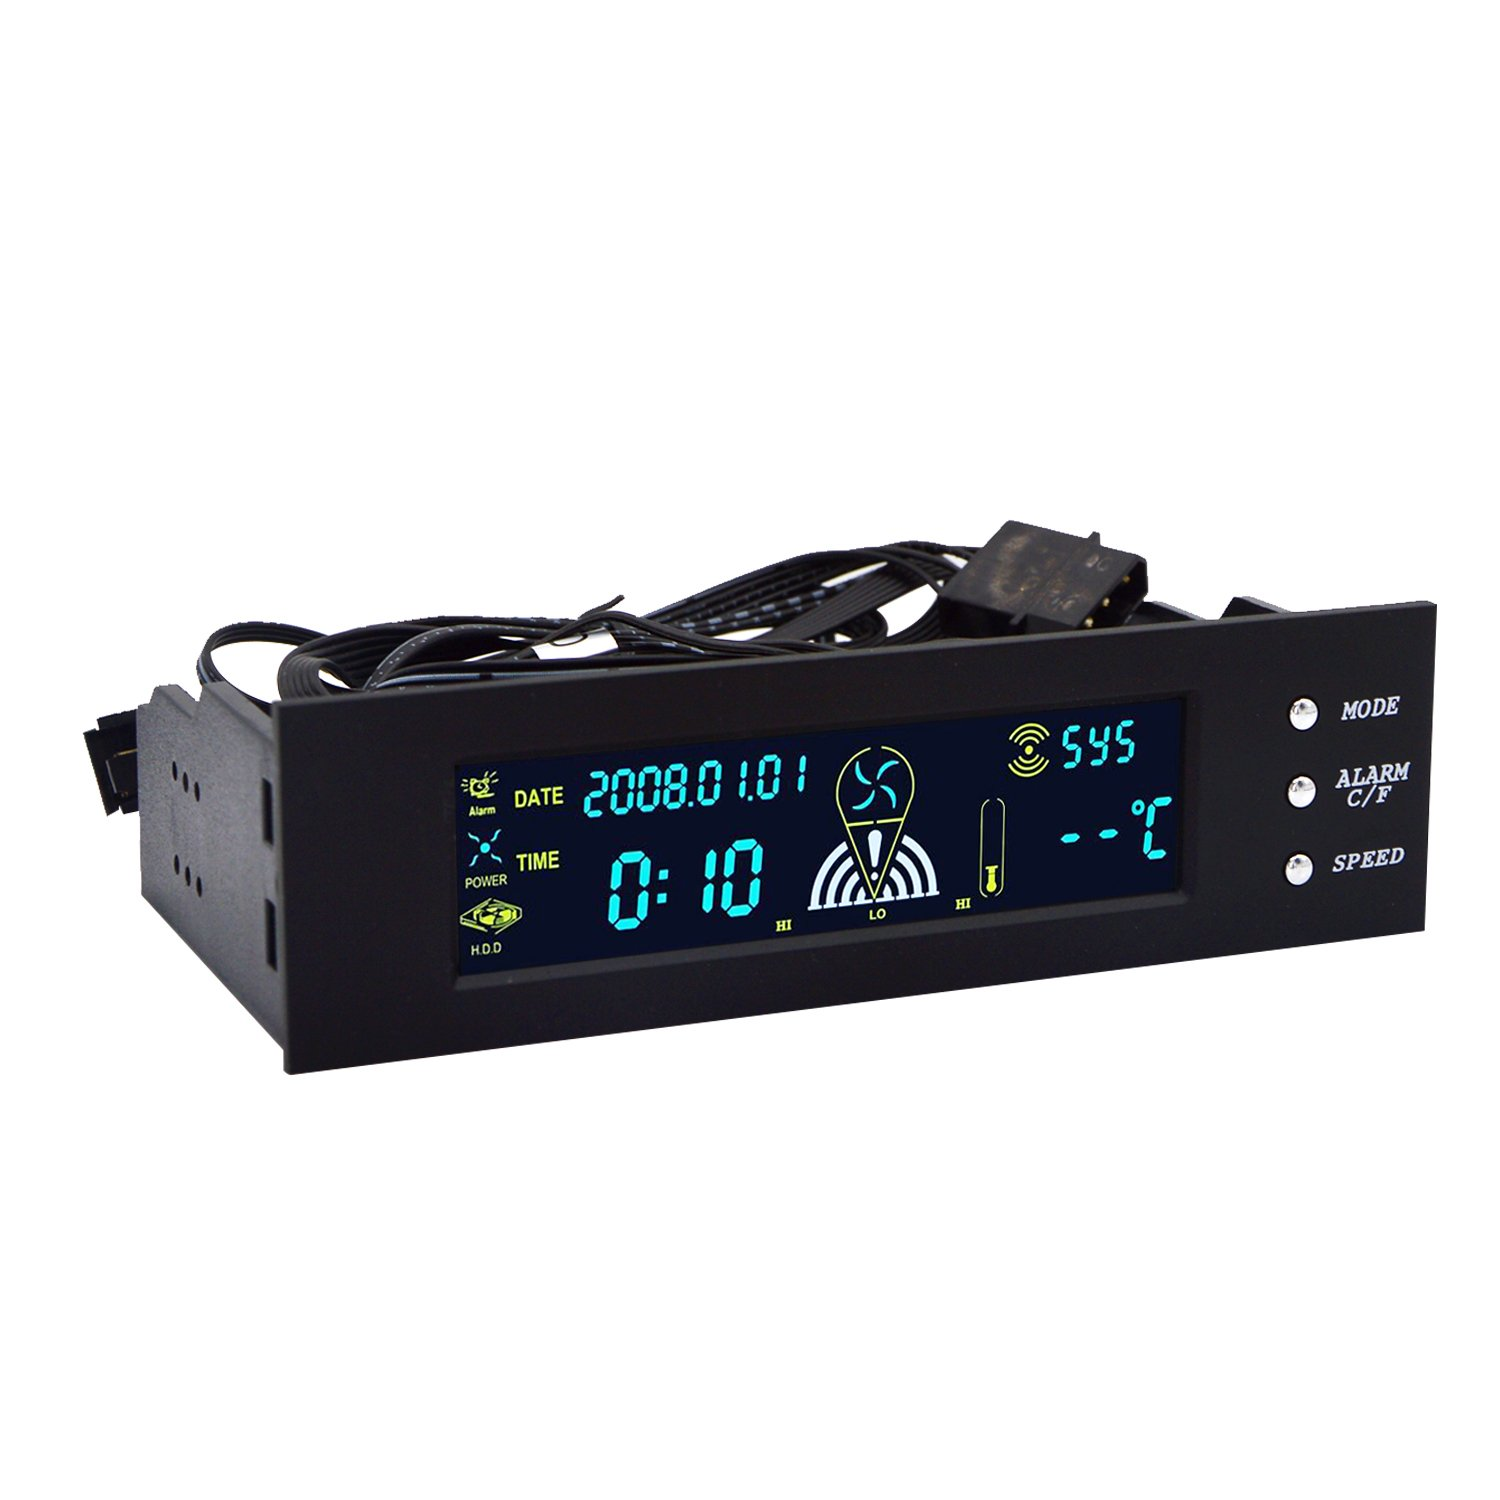 Cheap 6 Fan Controller Find Deals On Line At Diy Pwm For Or Pump Cases Power Supplies And Modding Get Quotations 525 Inch Speed Perrylee Pc Computer Temperature Front Panel Date